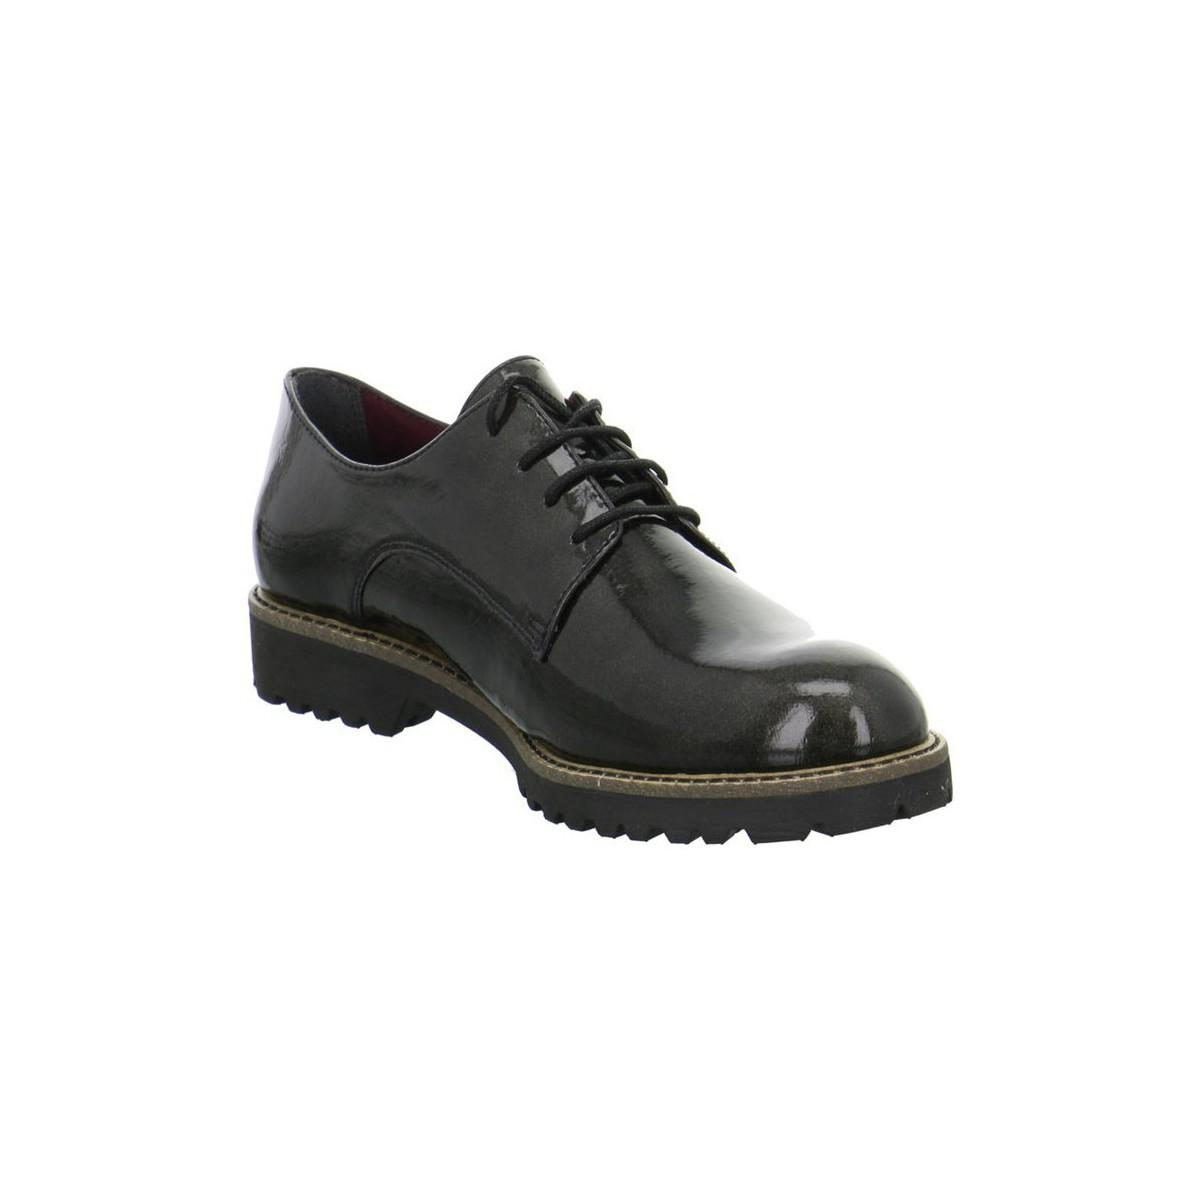 Save Lynn Grey Gray trainers Shoes In Women's Tamaris qSx0ZXX